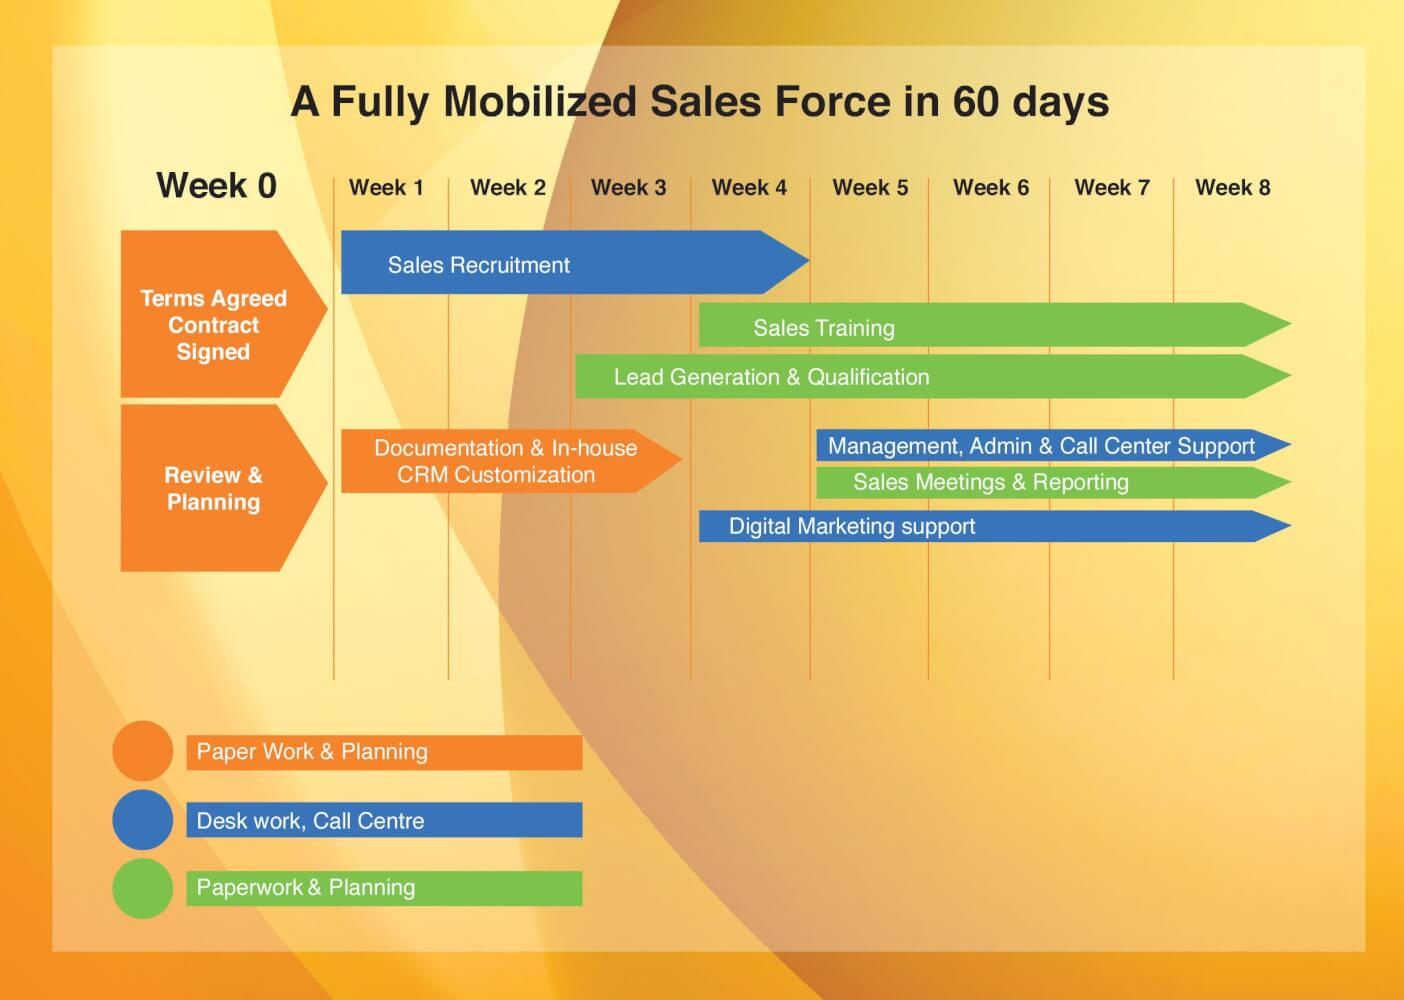 B2b sales outsourcing companies